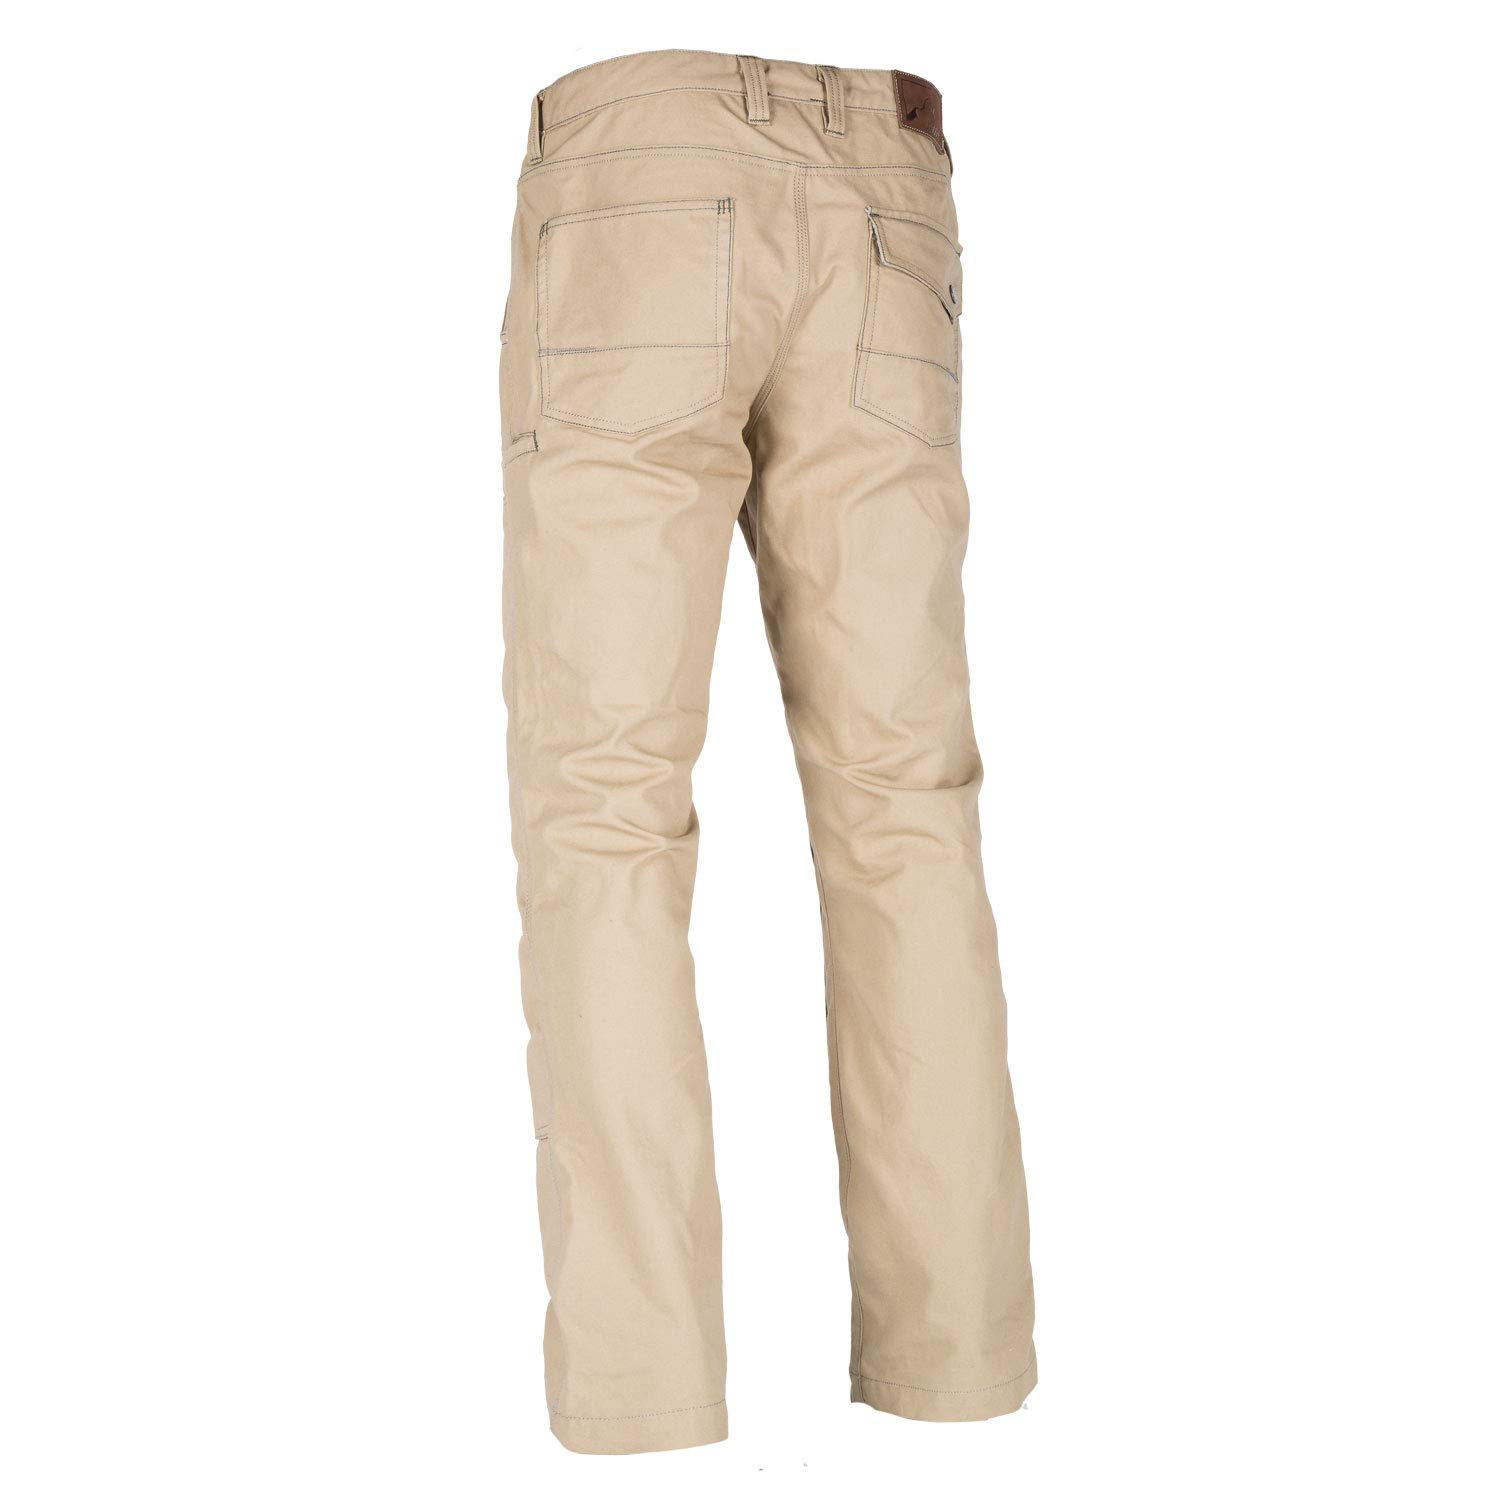 Outrider Pant 34 Dark Brown